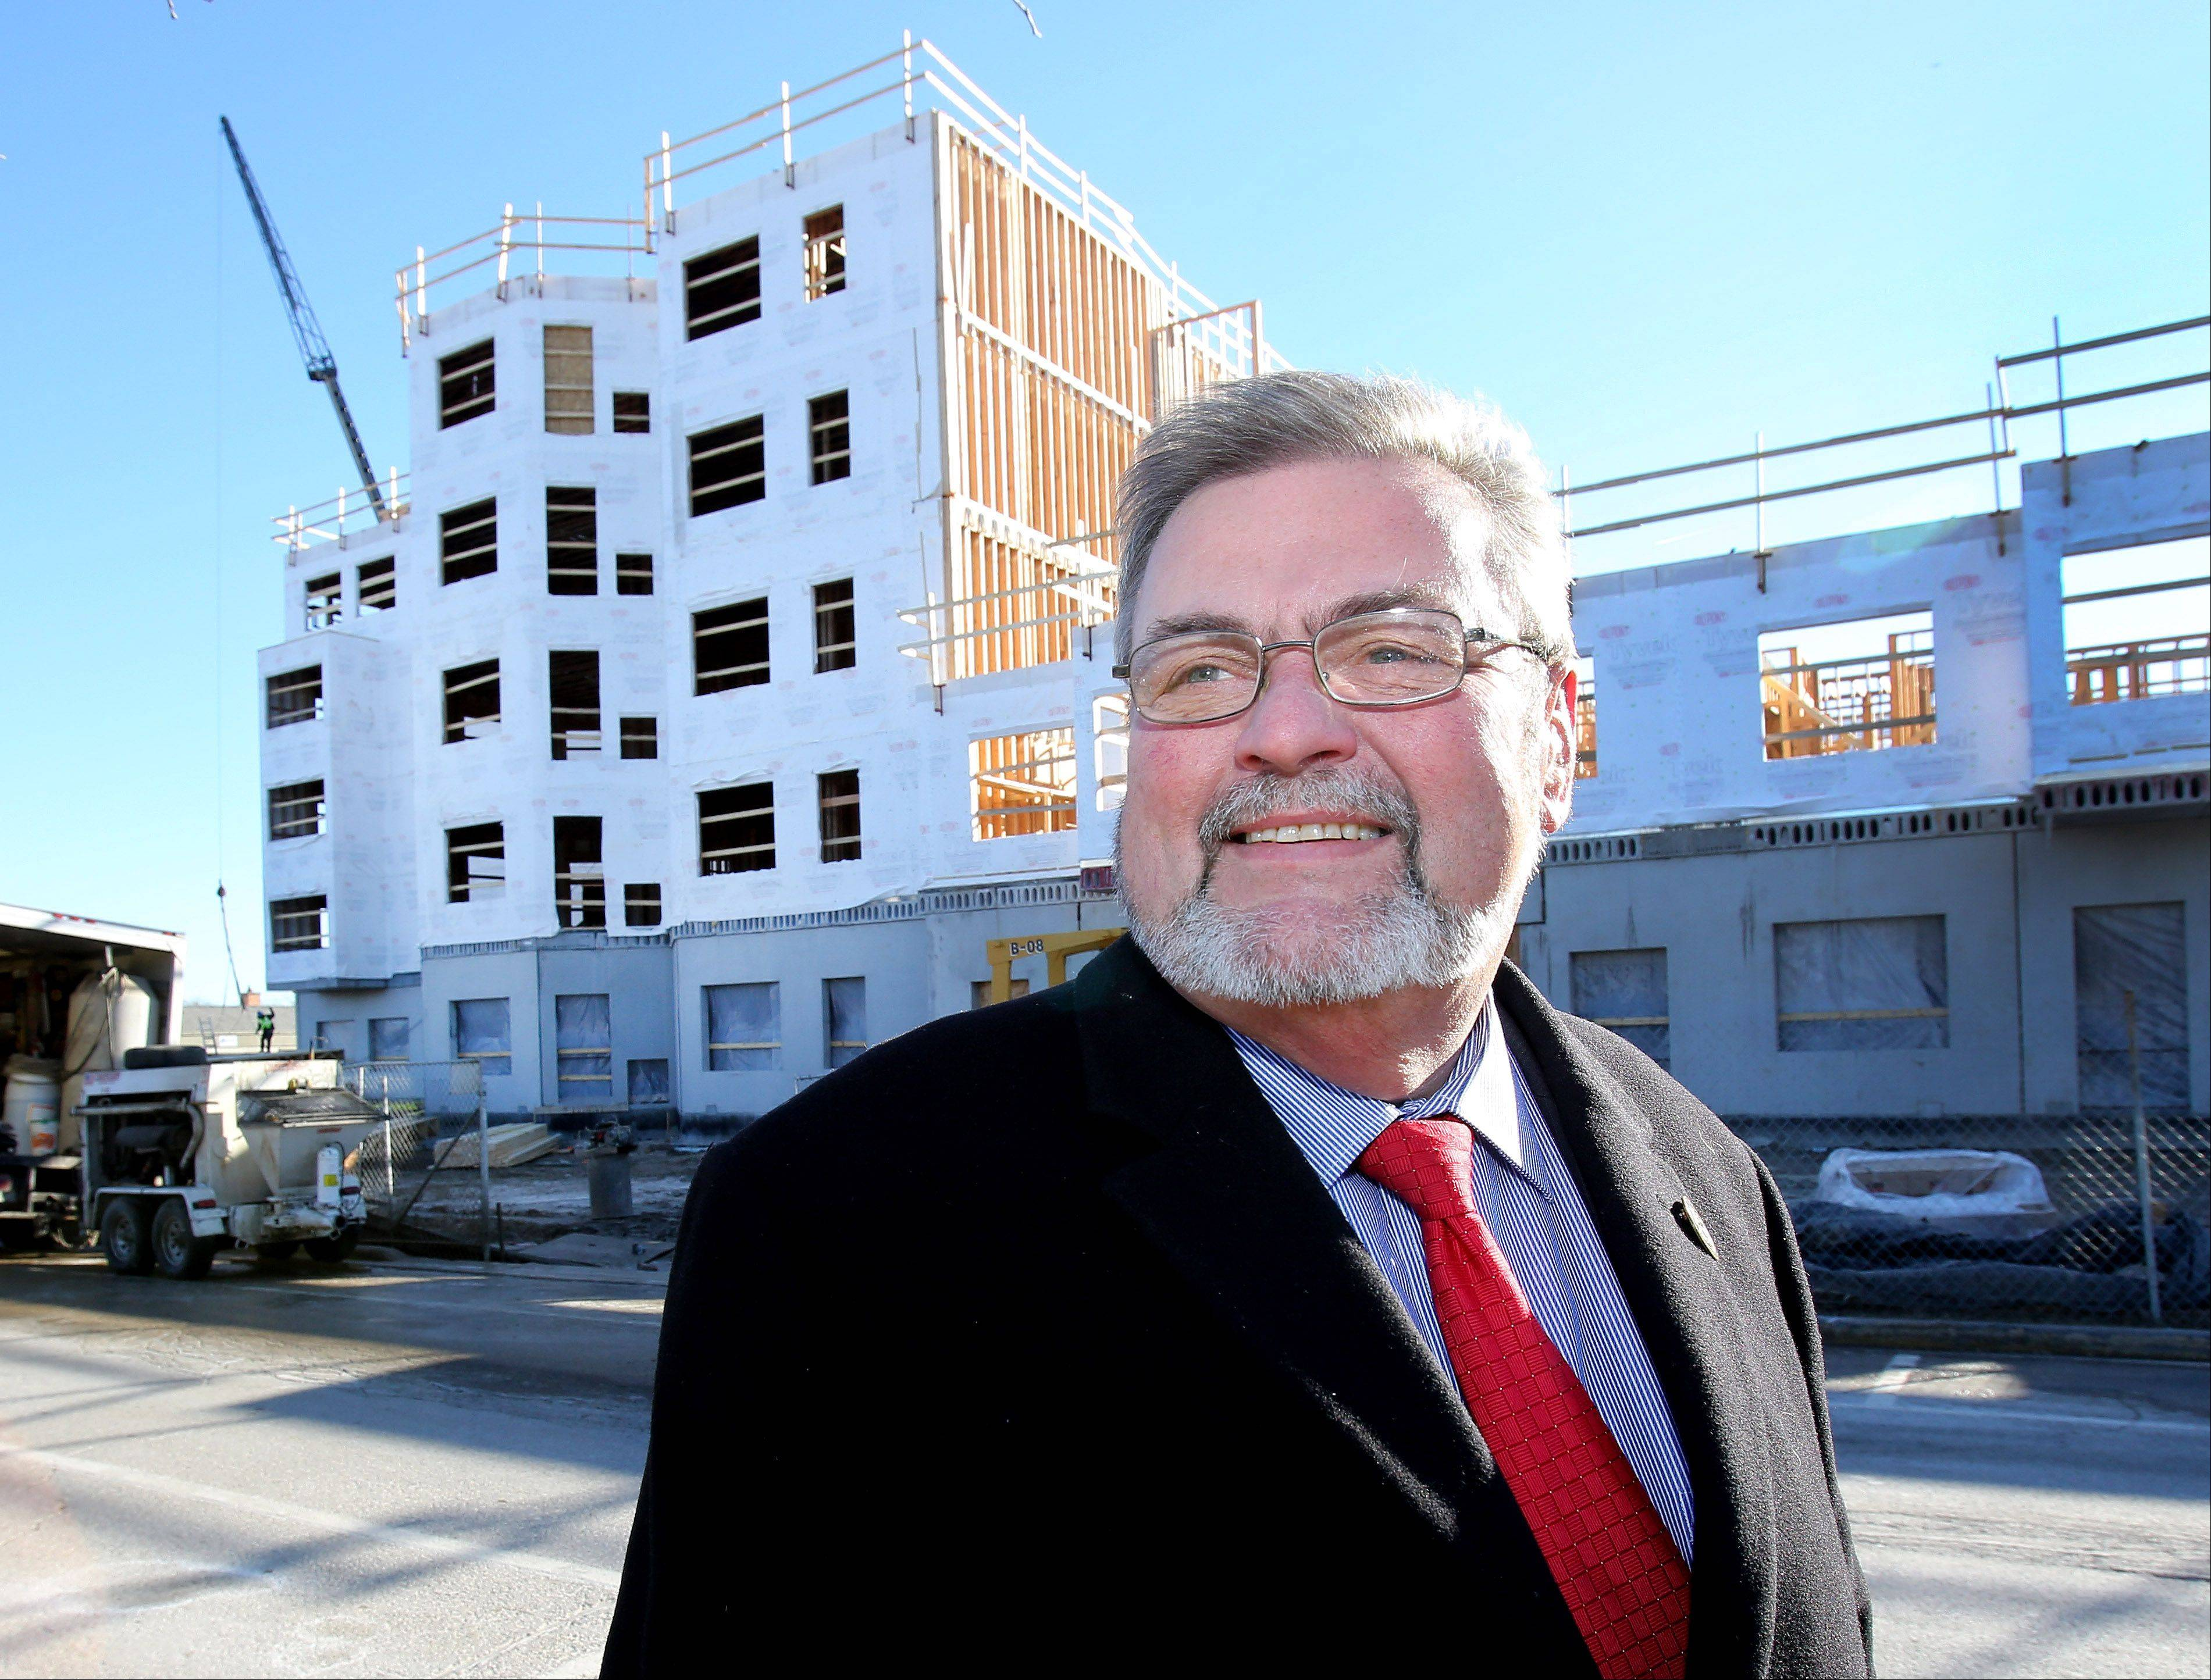 Gresk: Wheaton moving toward long-term vision for downtown